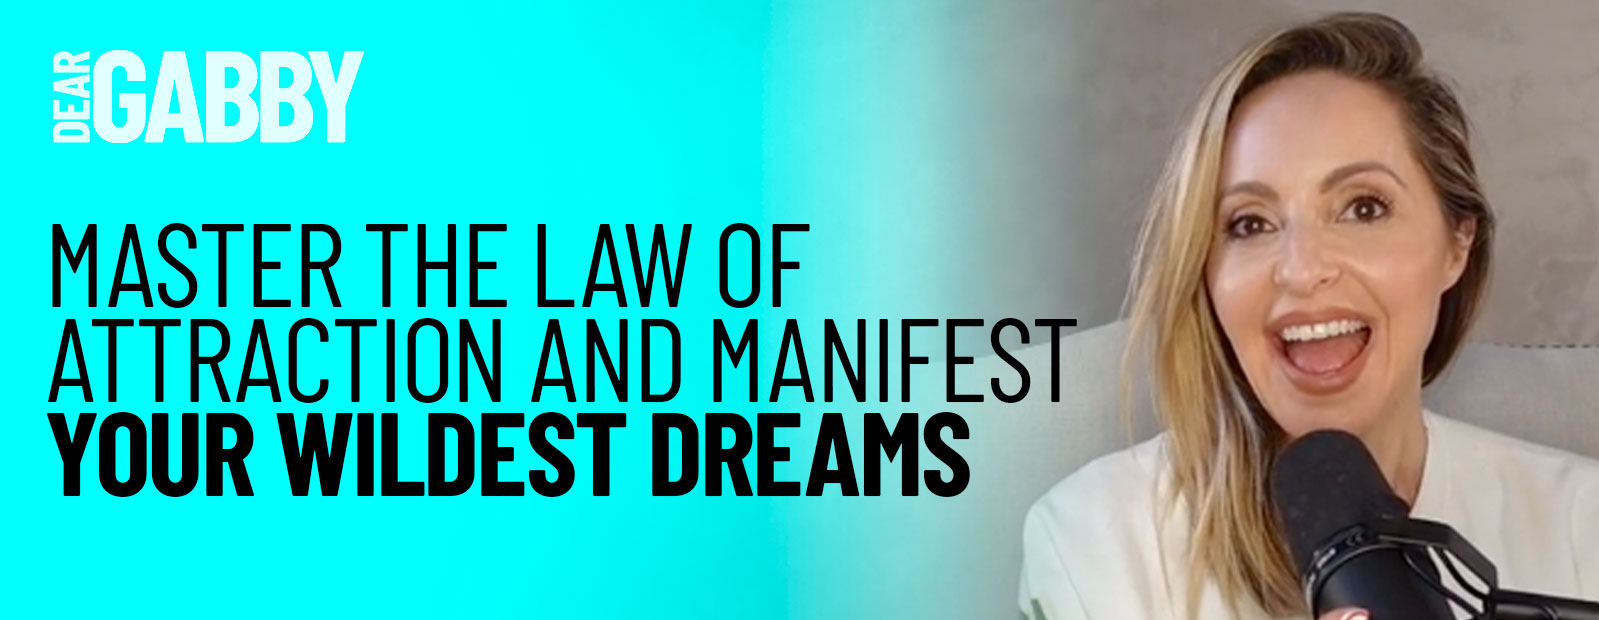 Master the Law of Attraction and Manifest Your Wildest Dreams